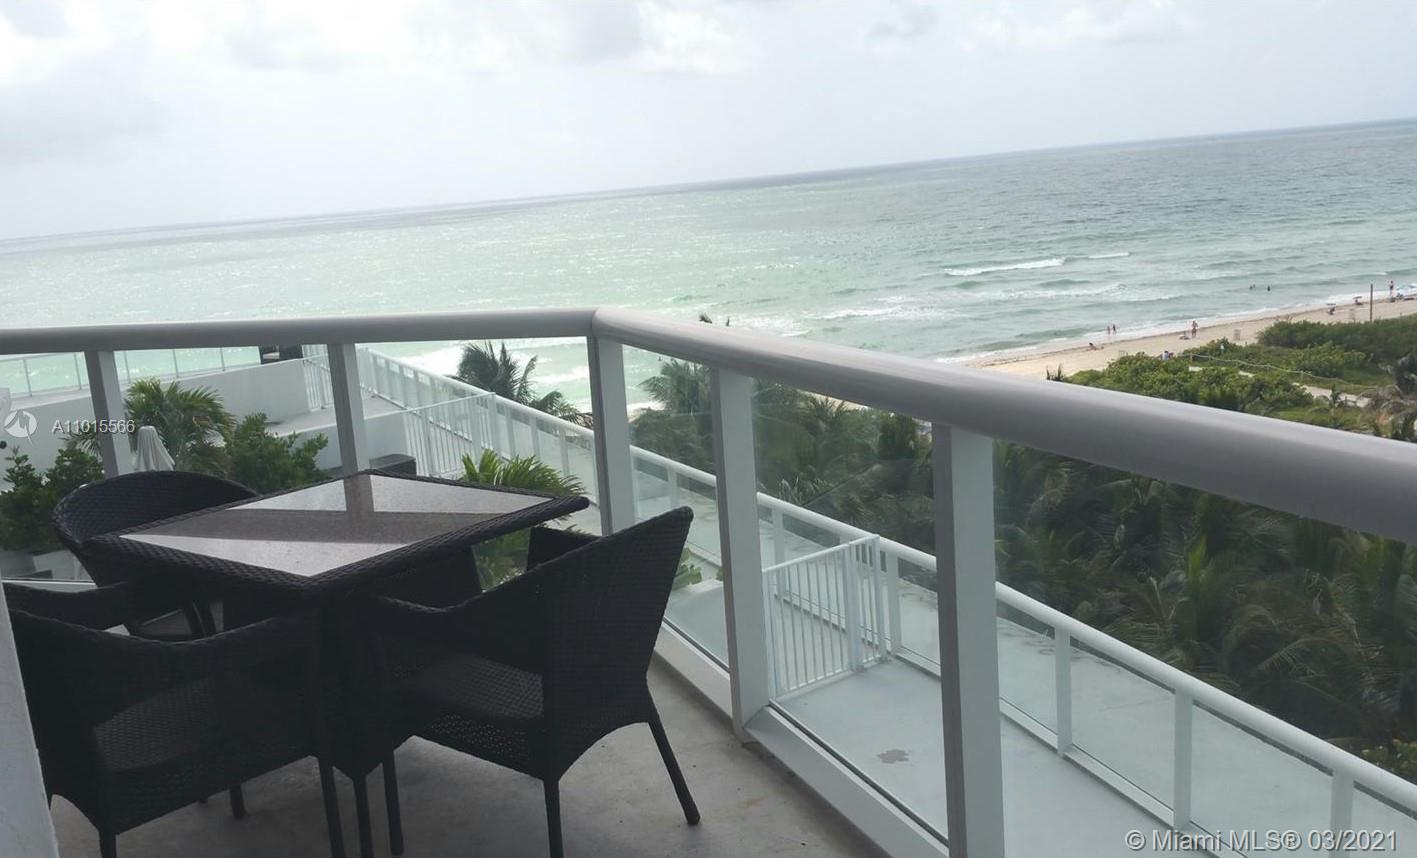 BEL AIRE ON THE OCEAN! 1/1.5 UNIT WITH SPECTACULAR VIEWS, FLOOR TO CEILING WINDOWS, AND BEACHFRONT A